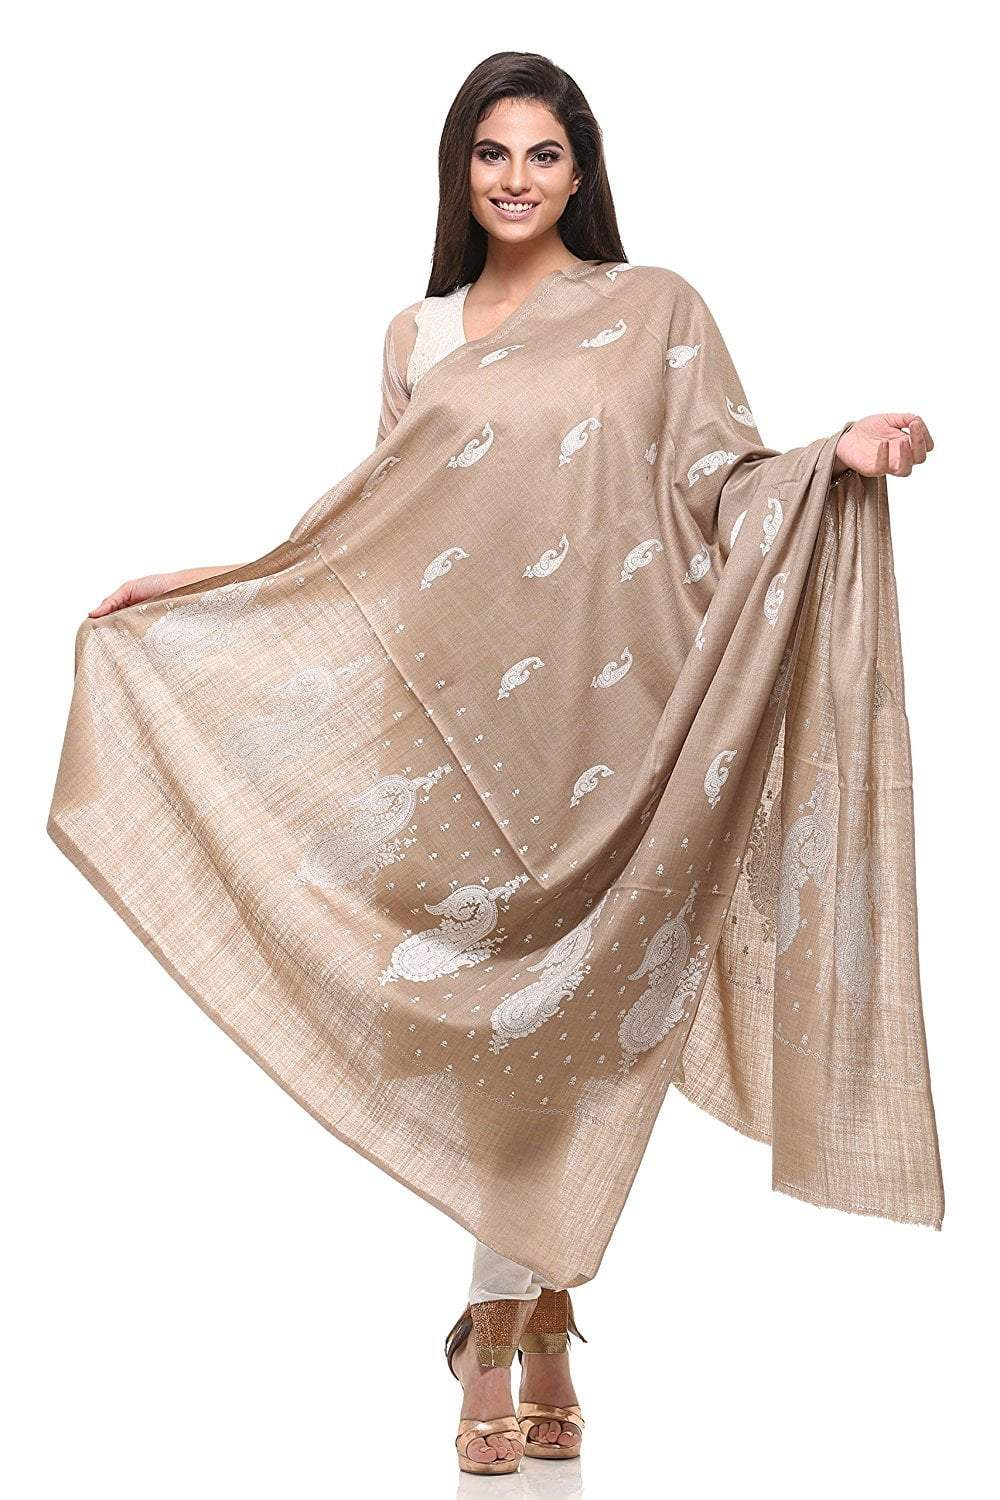 Pashtush Womens Pashmina Shawl with Tone on Tone Embroidery, Soft and Warm, Light Weight Shawl